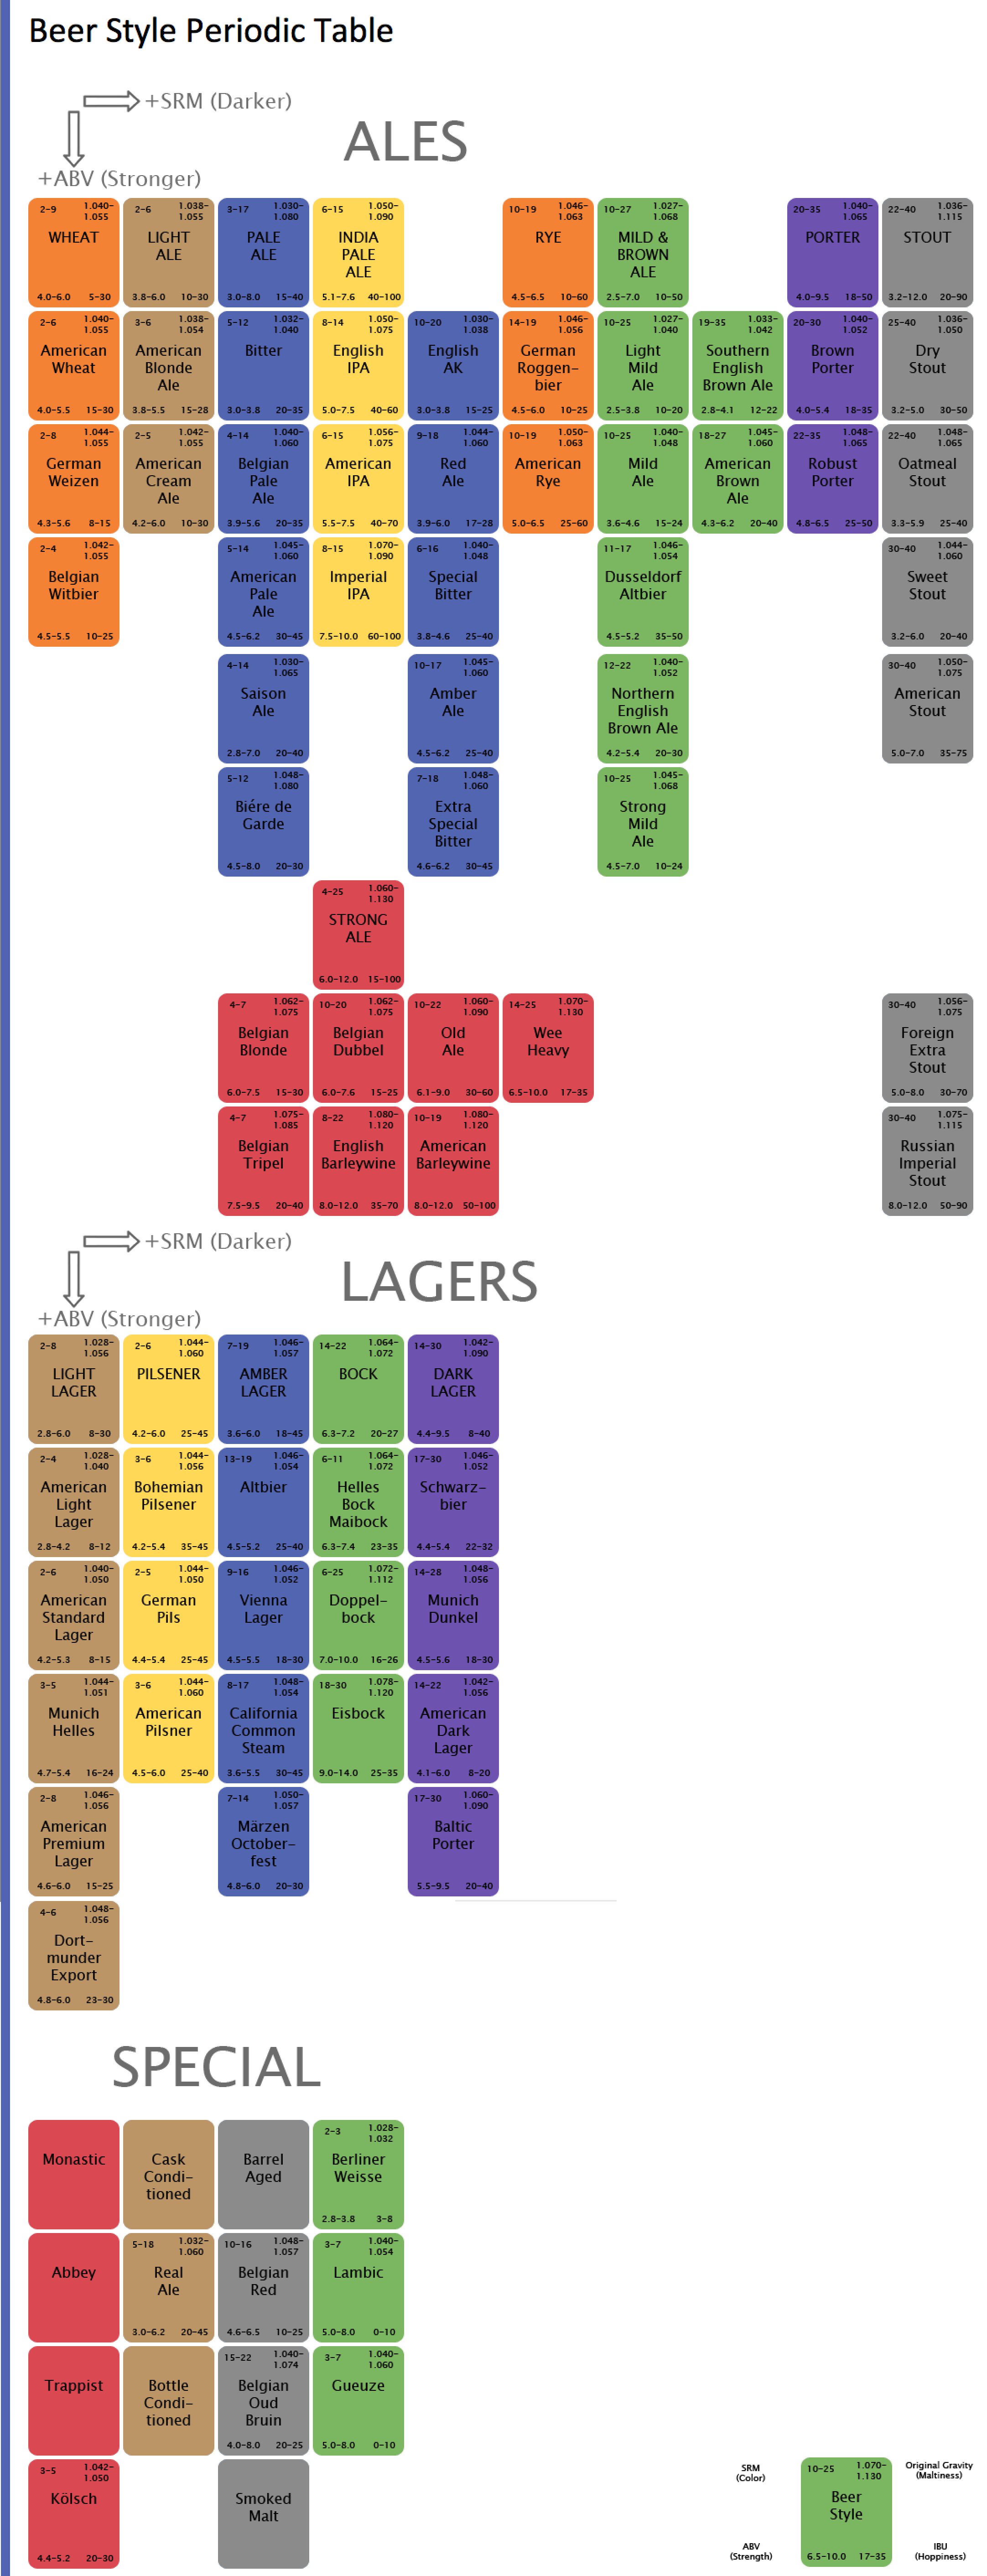 Beer style periodic table brookston beer bulletin beer style periodic table urtaz Image collections